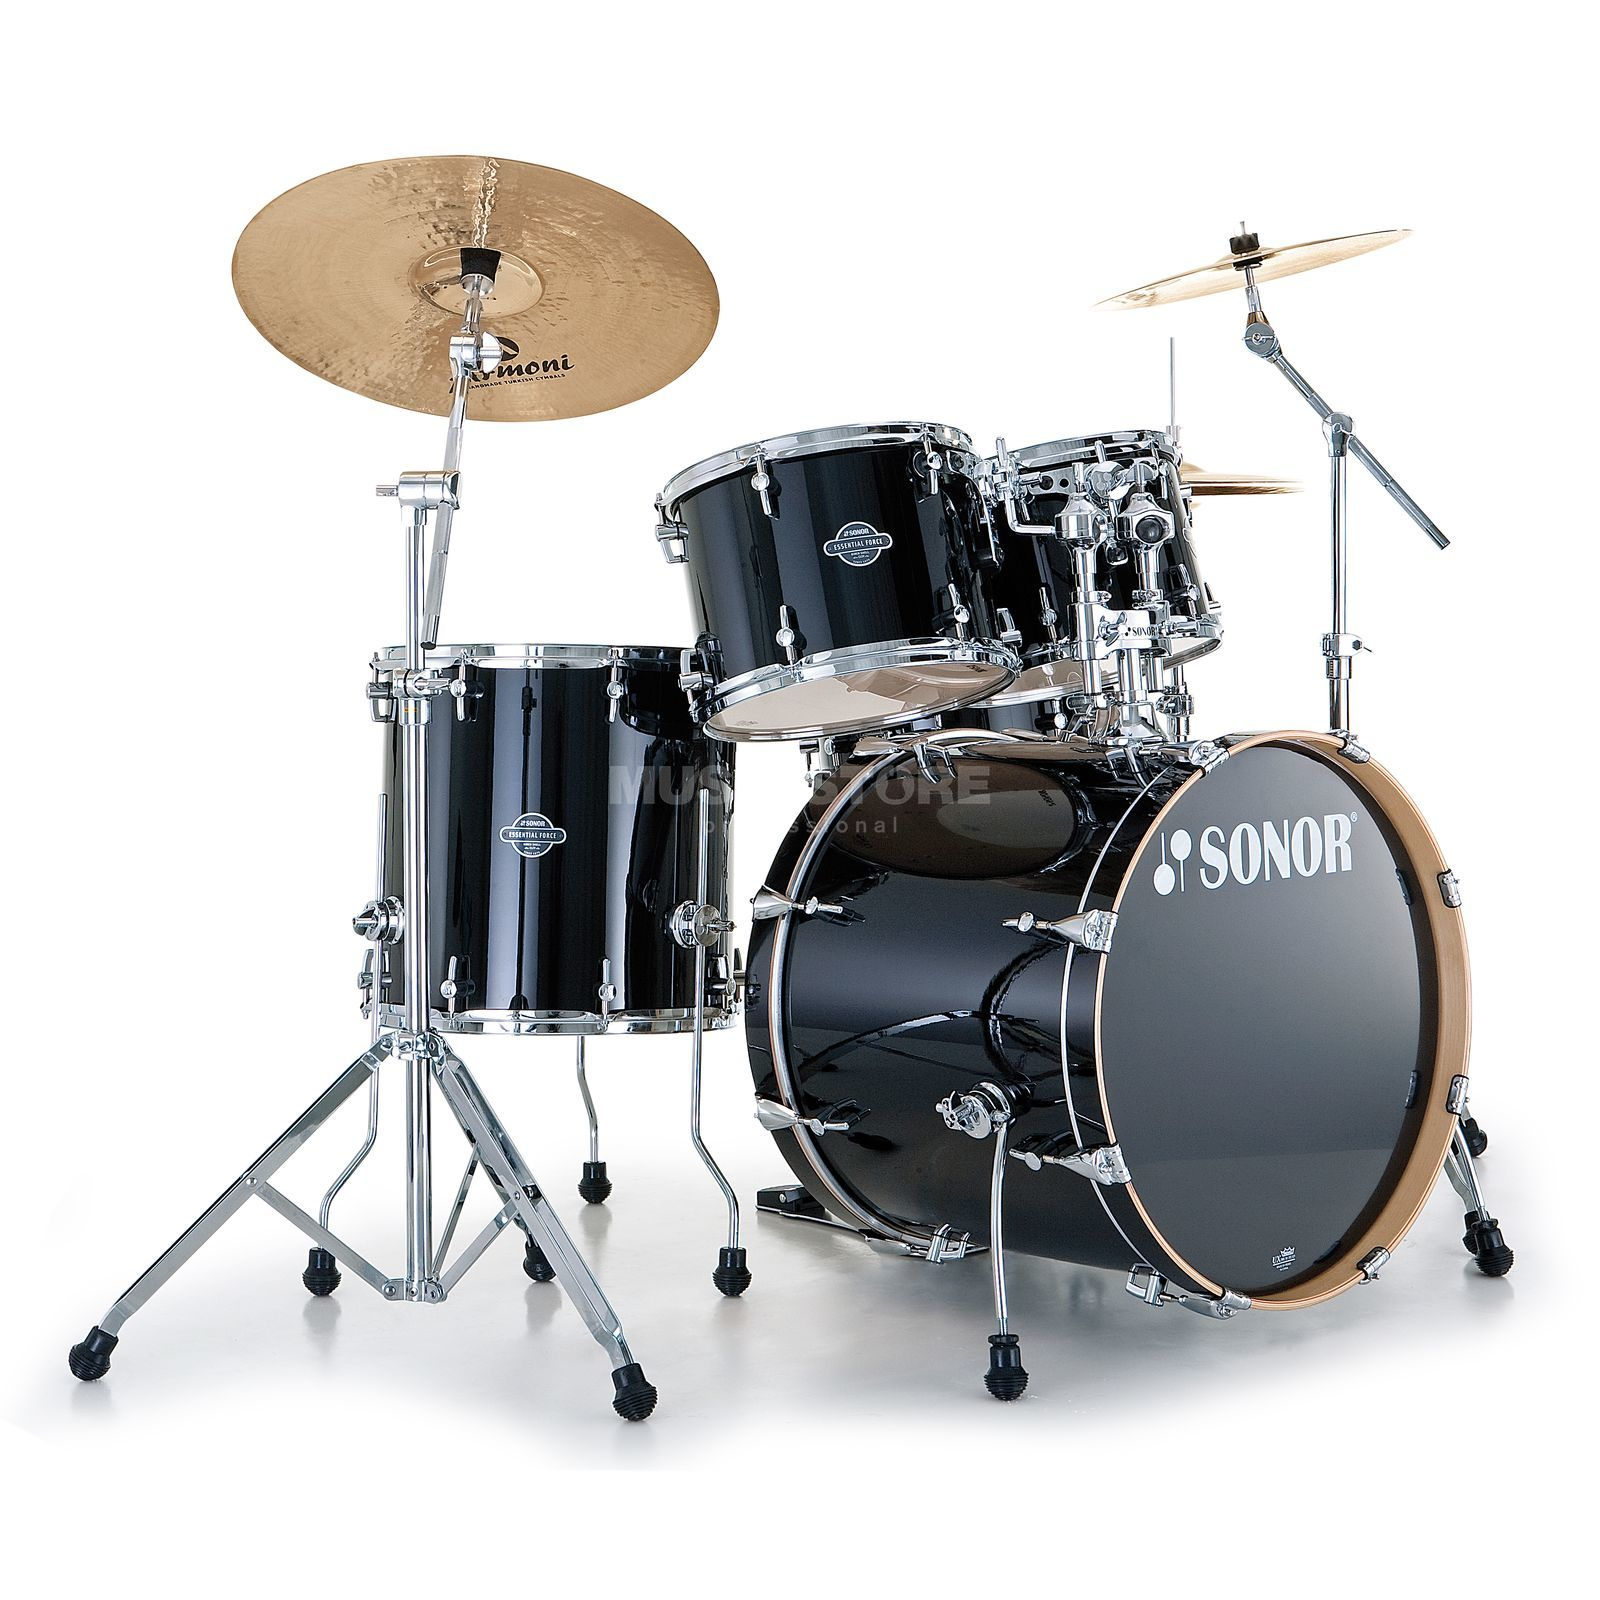 Sonor Essential Force Stage 3, Piano Black #41 Product Image